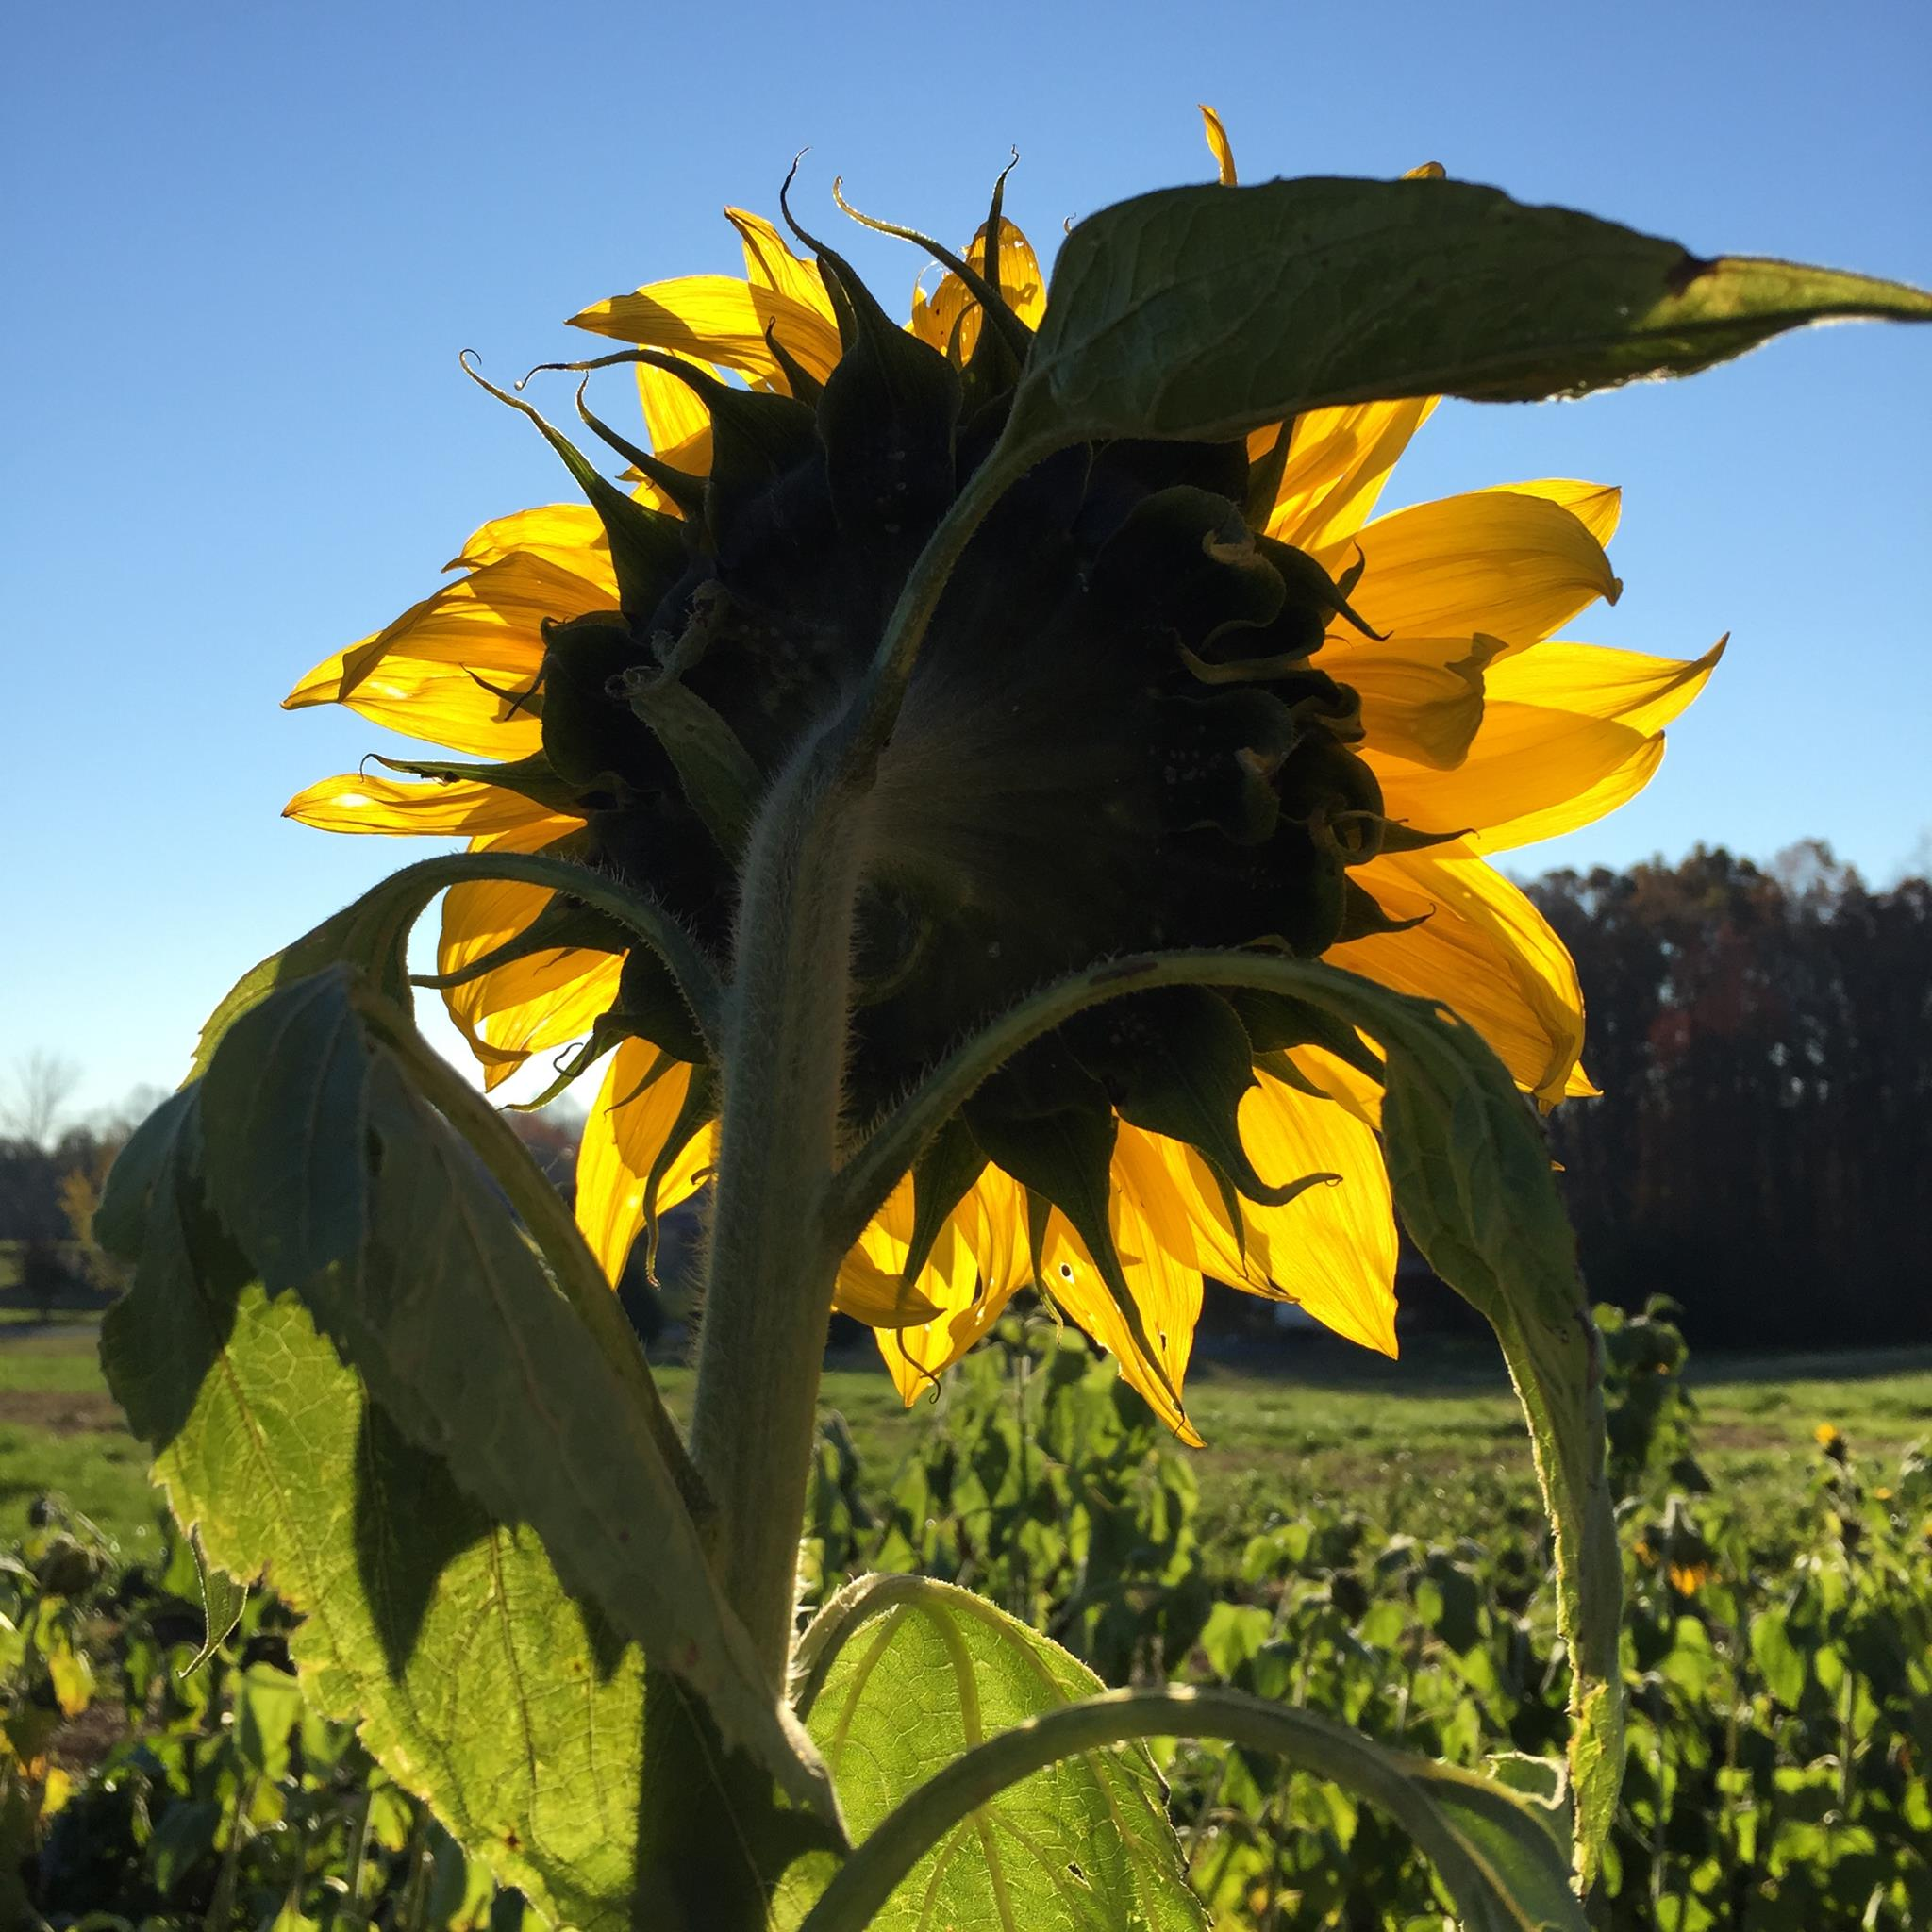 Lessons in a Sunflower